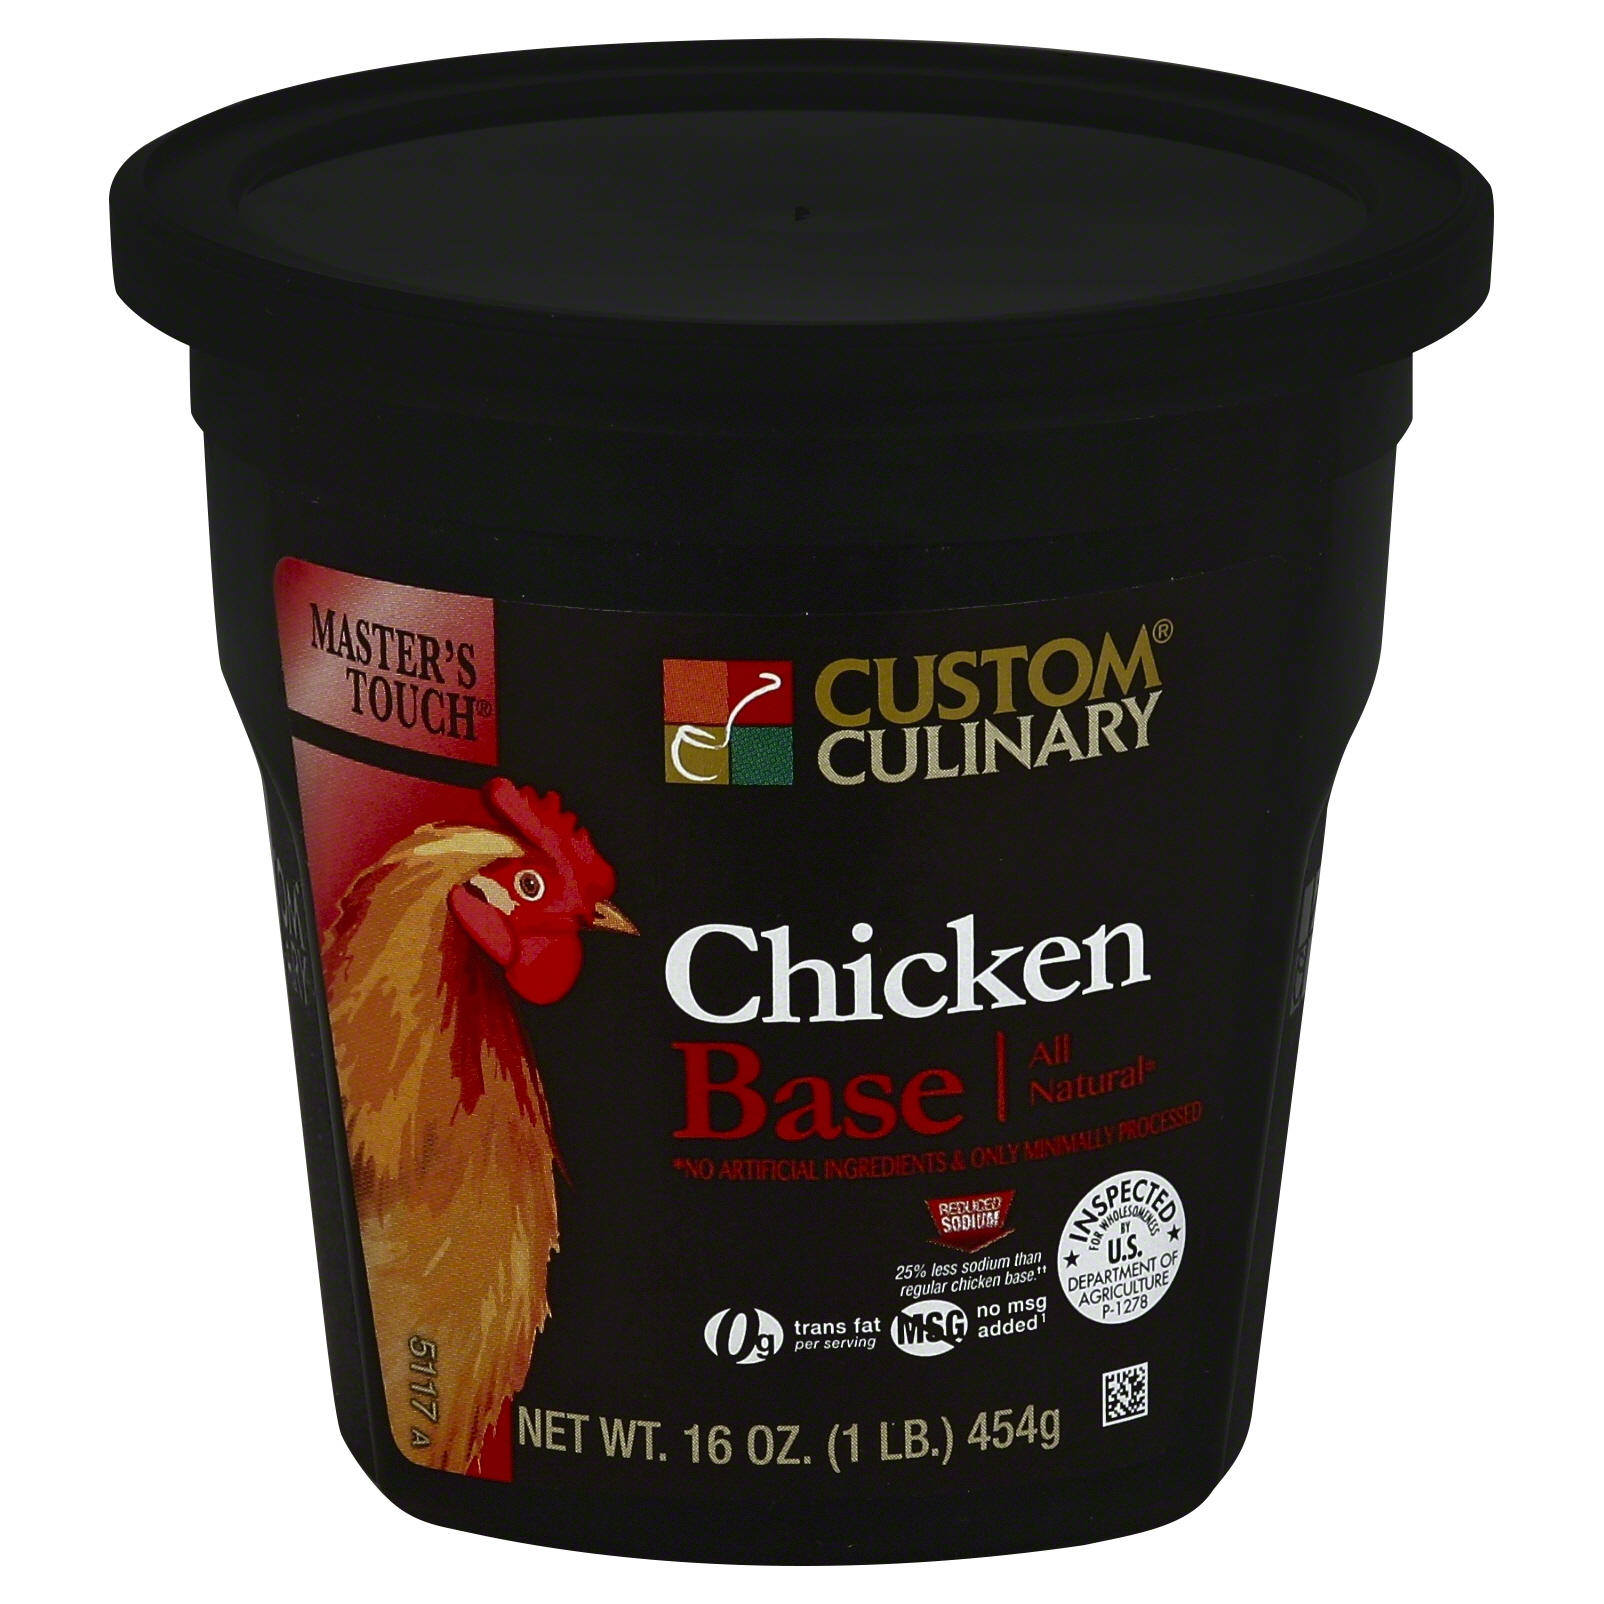 5117 - Masters Touch All Natural Reduced Sodium Chicken Base